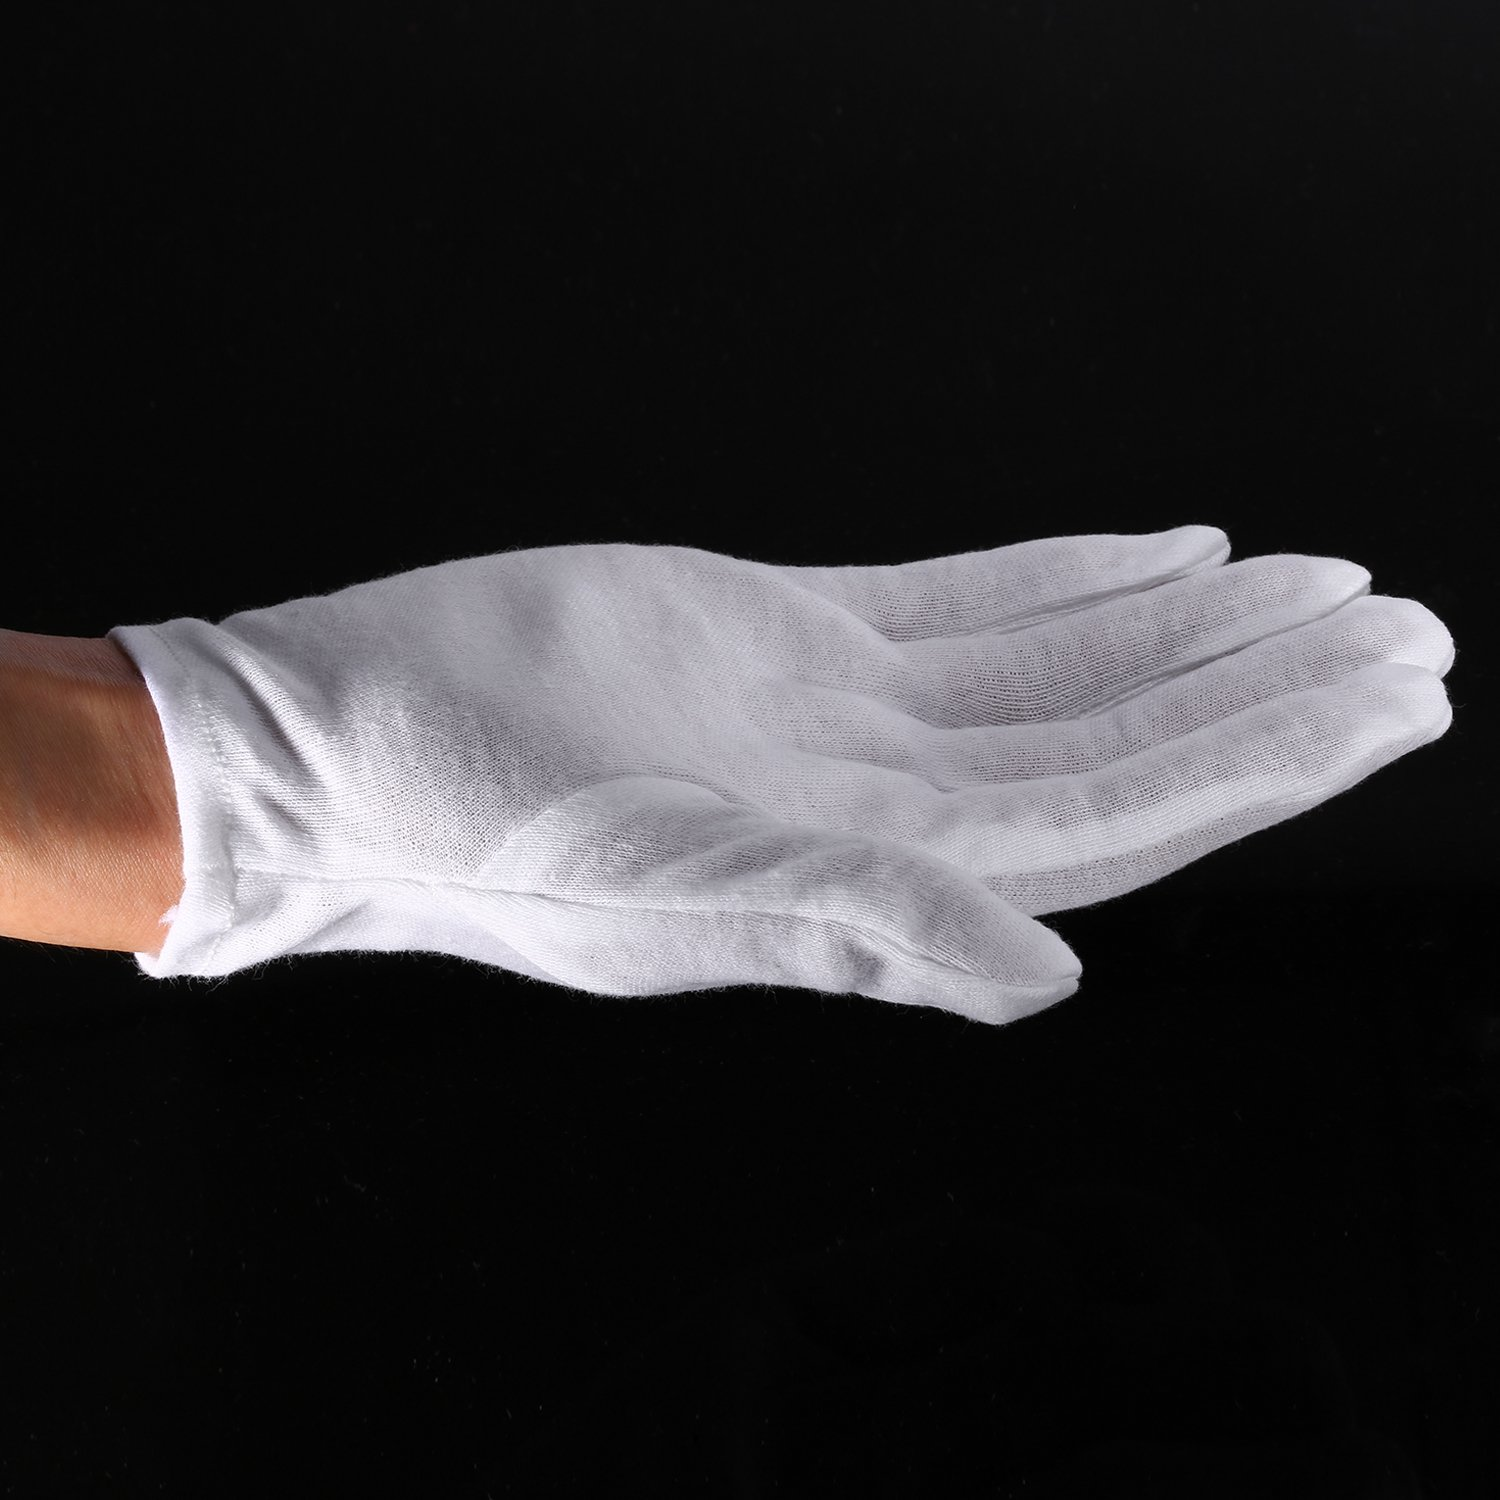 Neewer 24 Pairs (48 Gloves) 100% Cotton Lisle White Inspection Work Gloves for Coin, Jewelry, Silver, or Photo Inspection by Neewer (Image #4)